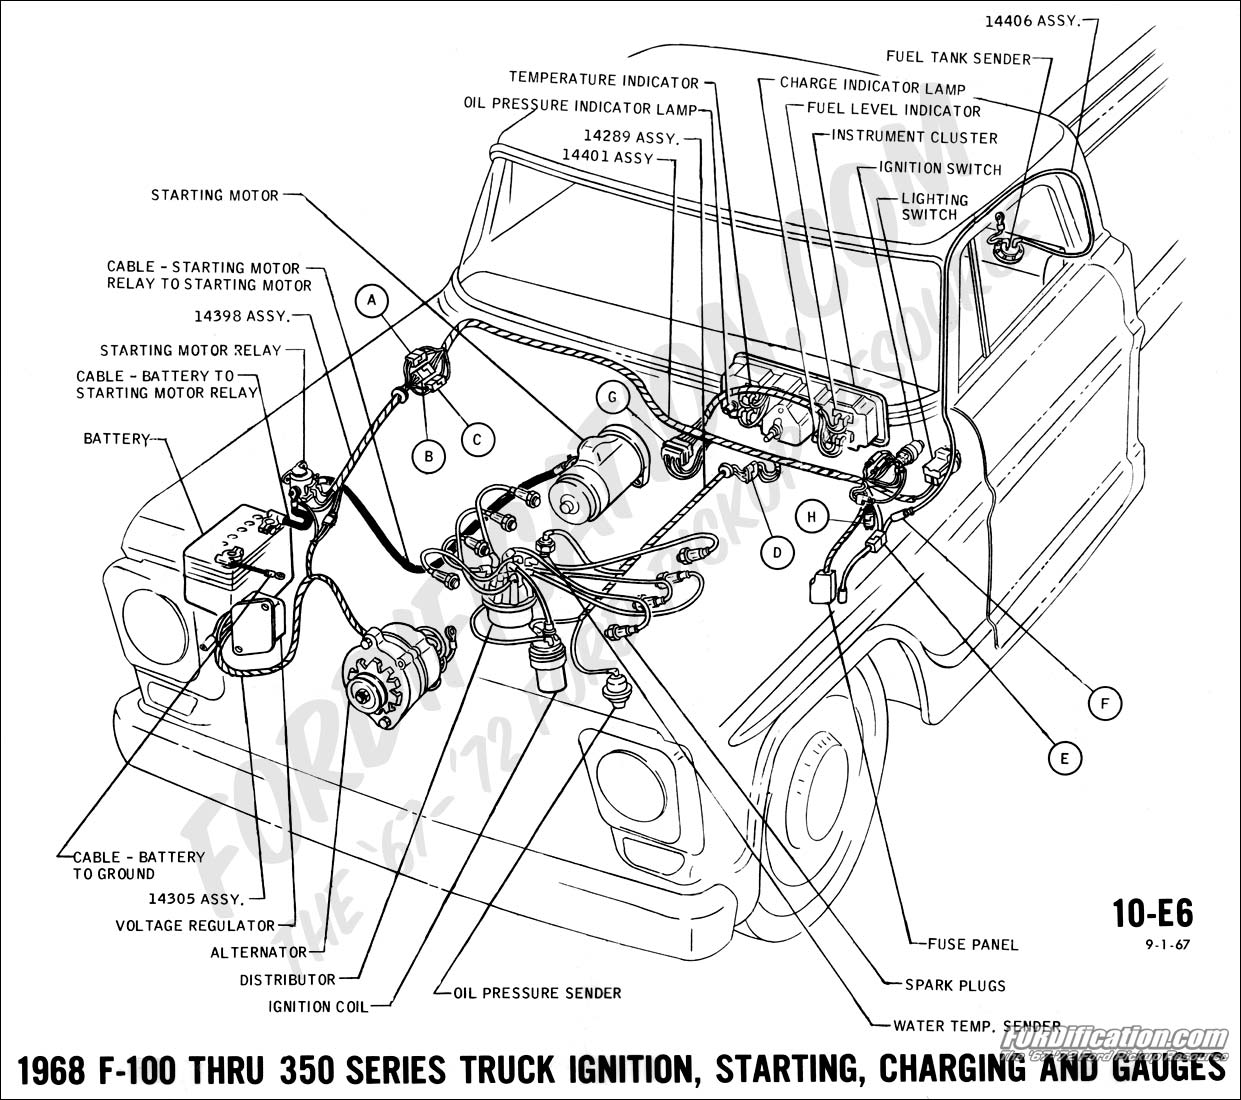 68 08 ford truck technical drawings and schematics section h wiring truck wiring harness at highcare.asia